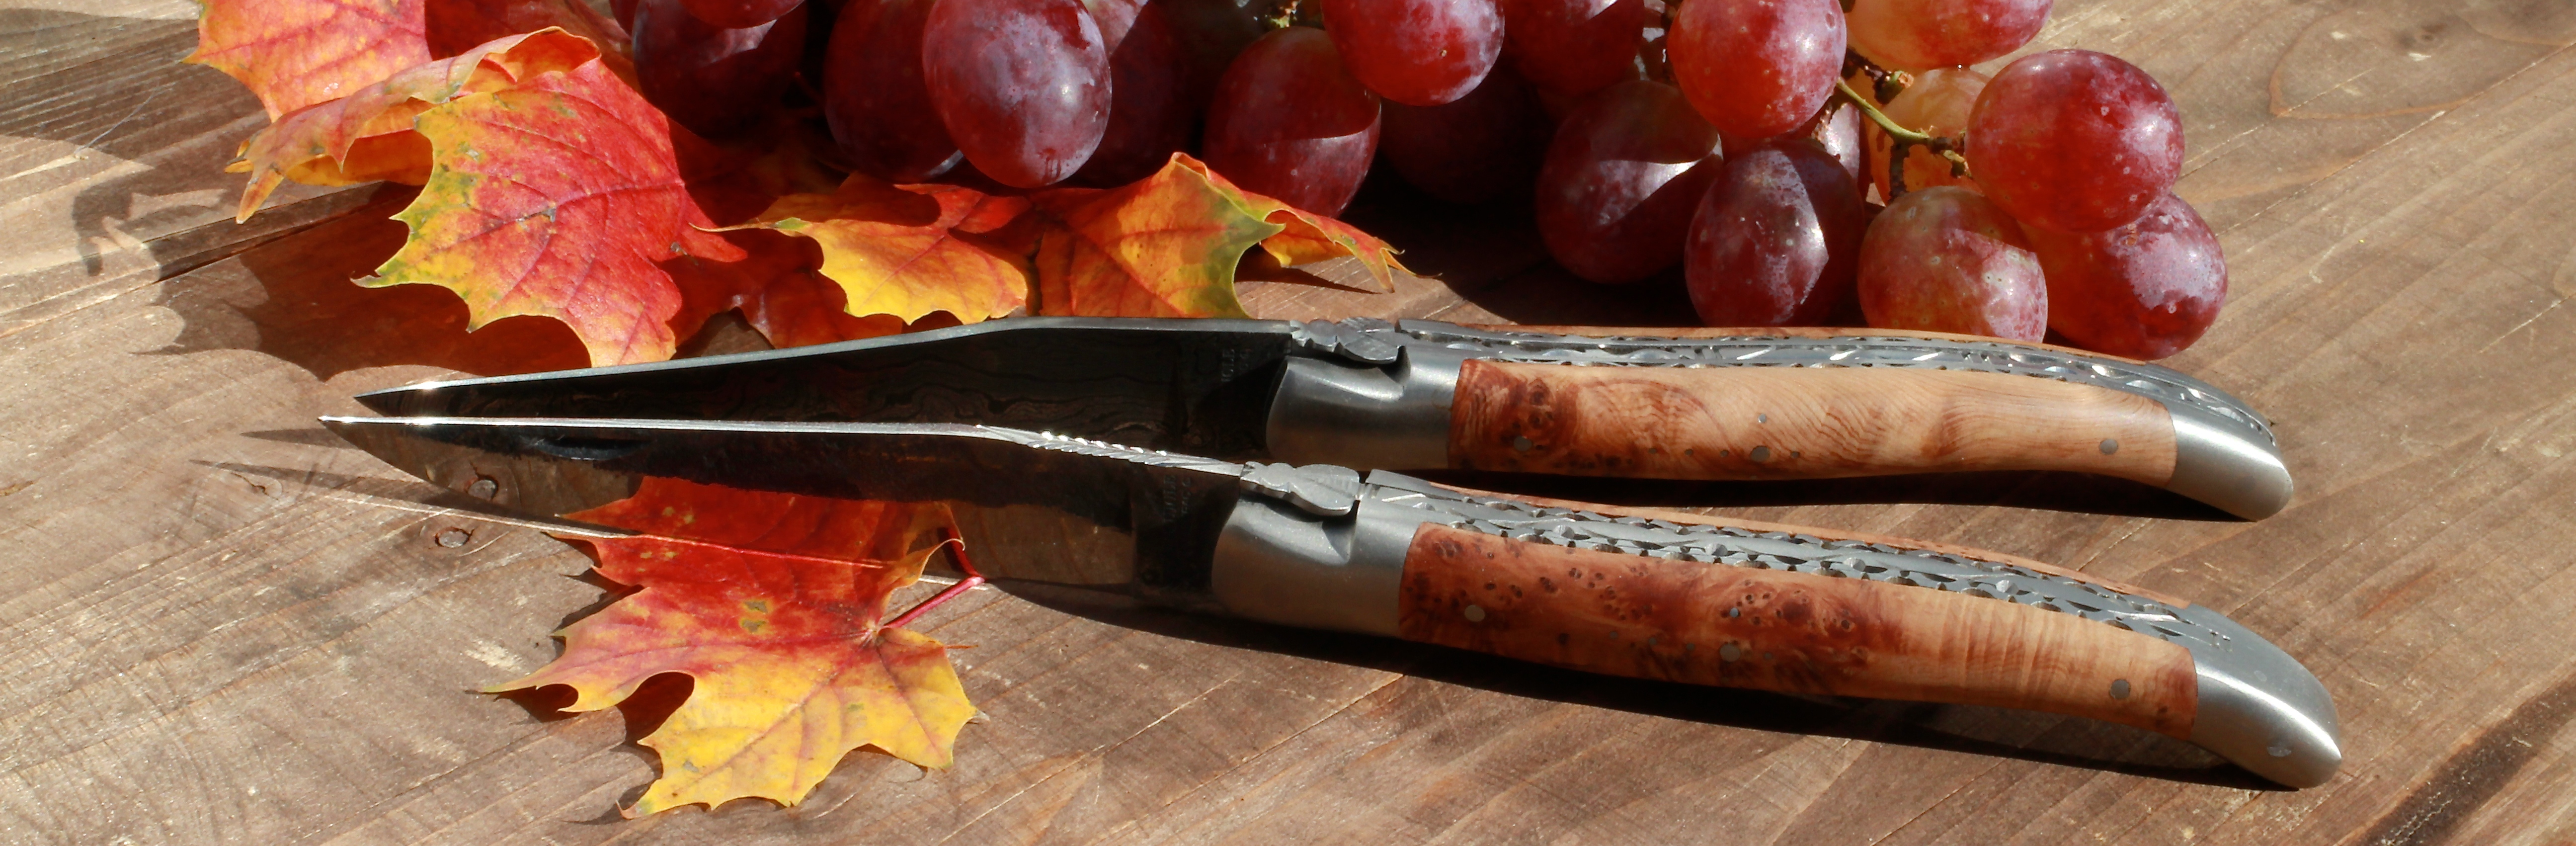 Laguiole knives - 100% handmade in France